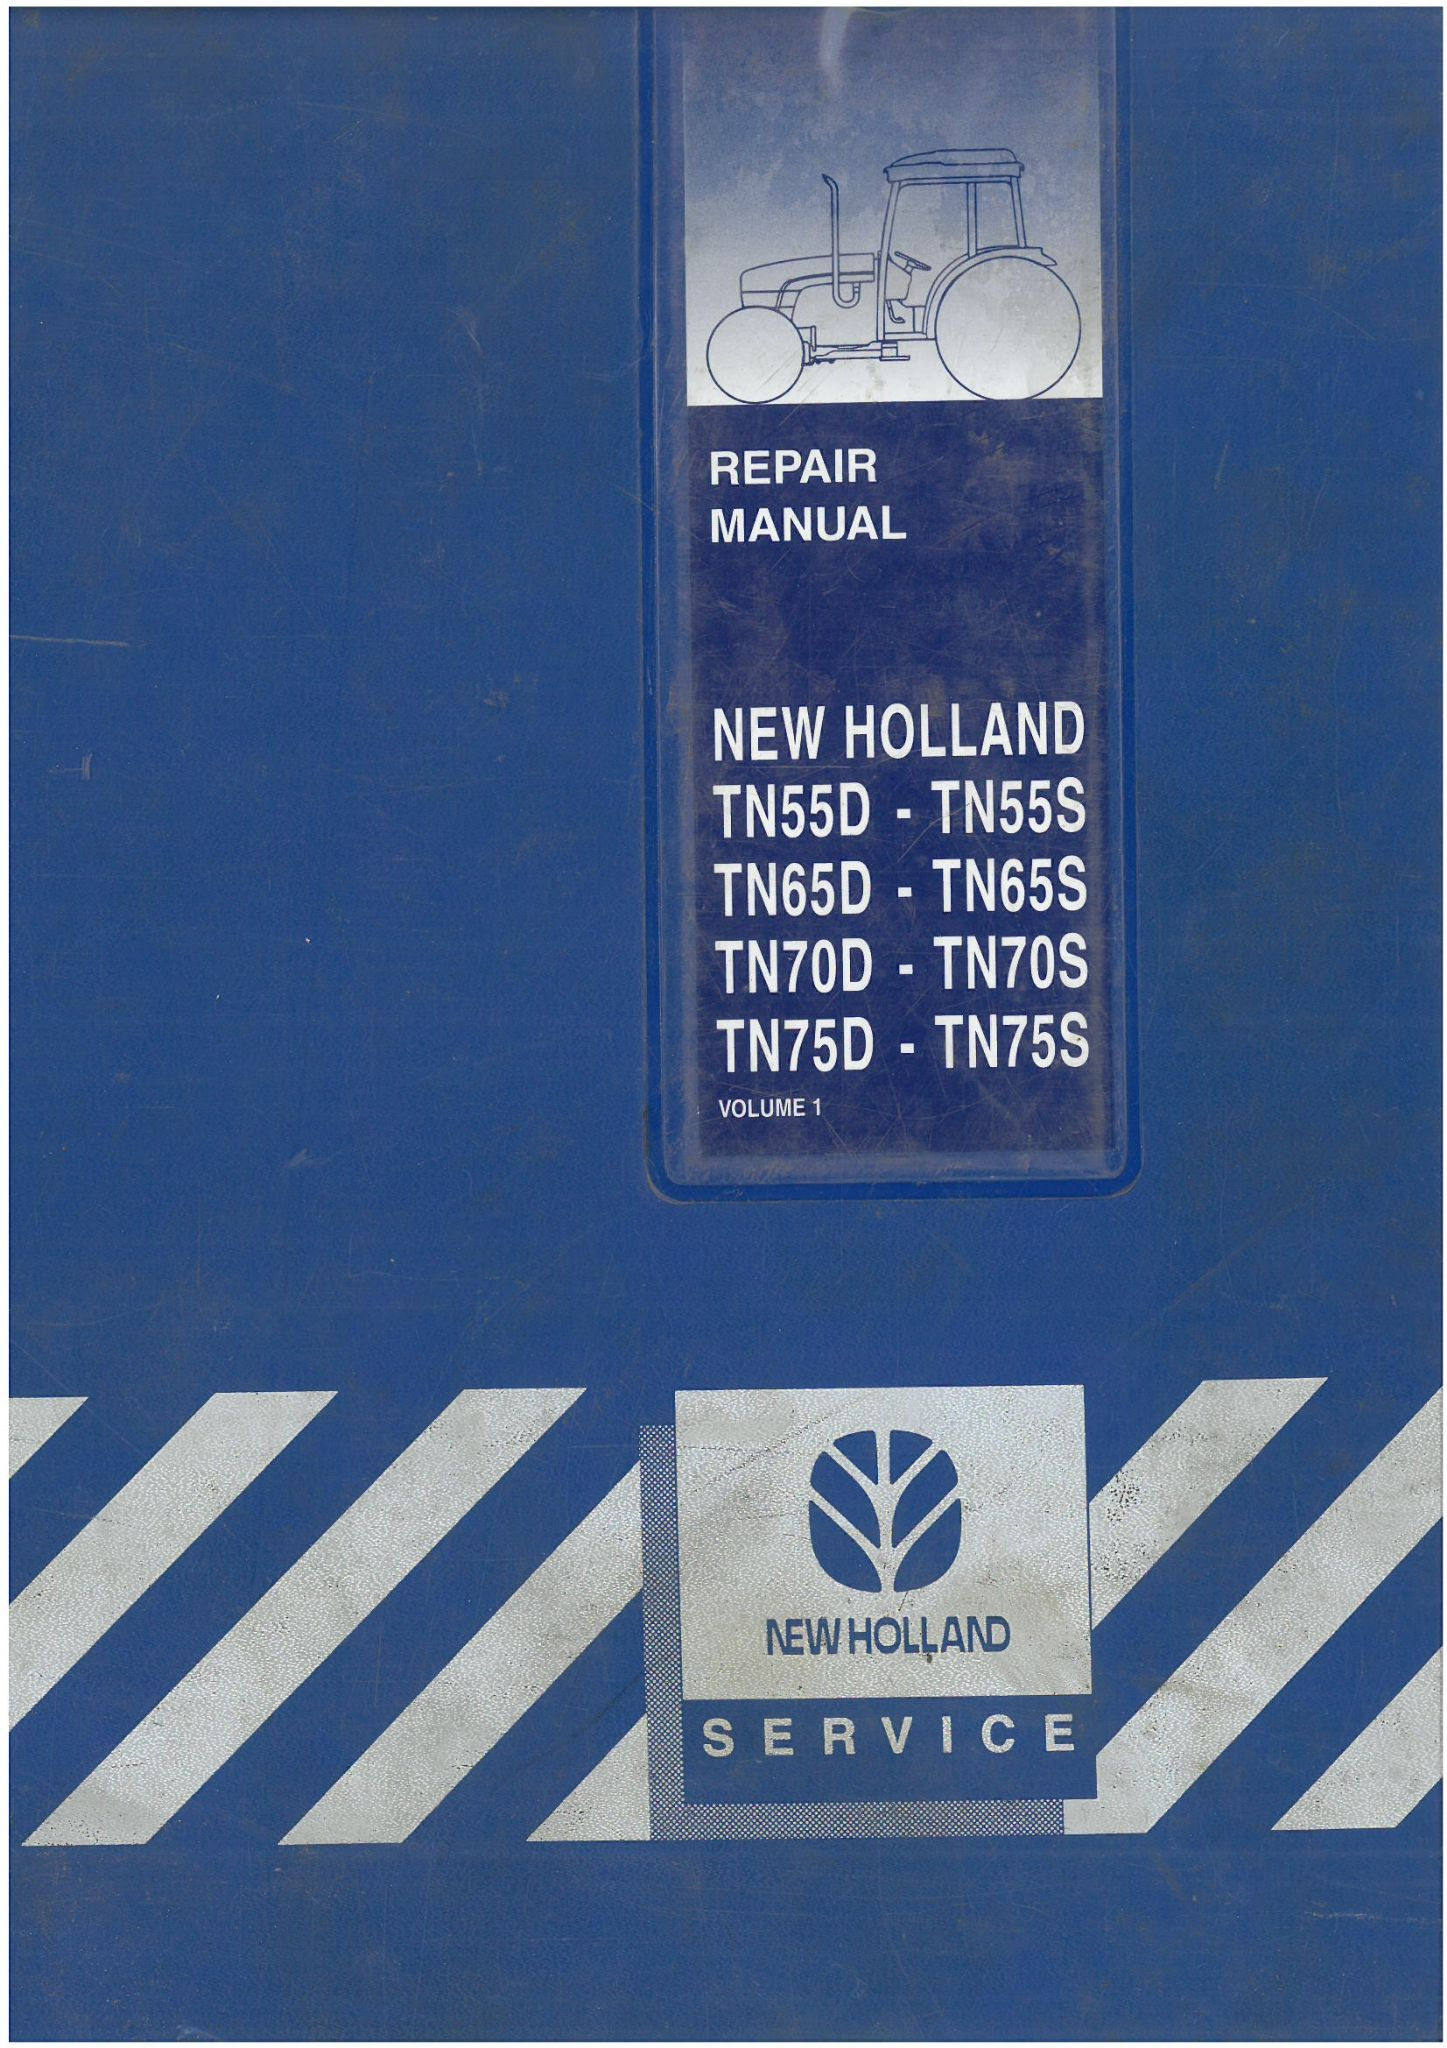 New Holland Tractor TN55D TN55S TN65D TN65S TN70D TN70S TN75D TN75S Workshop  Service Manual